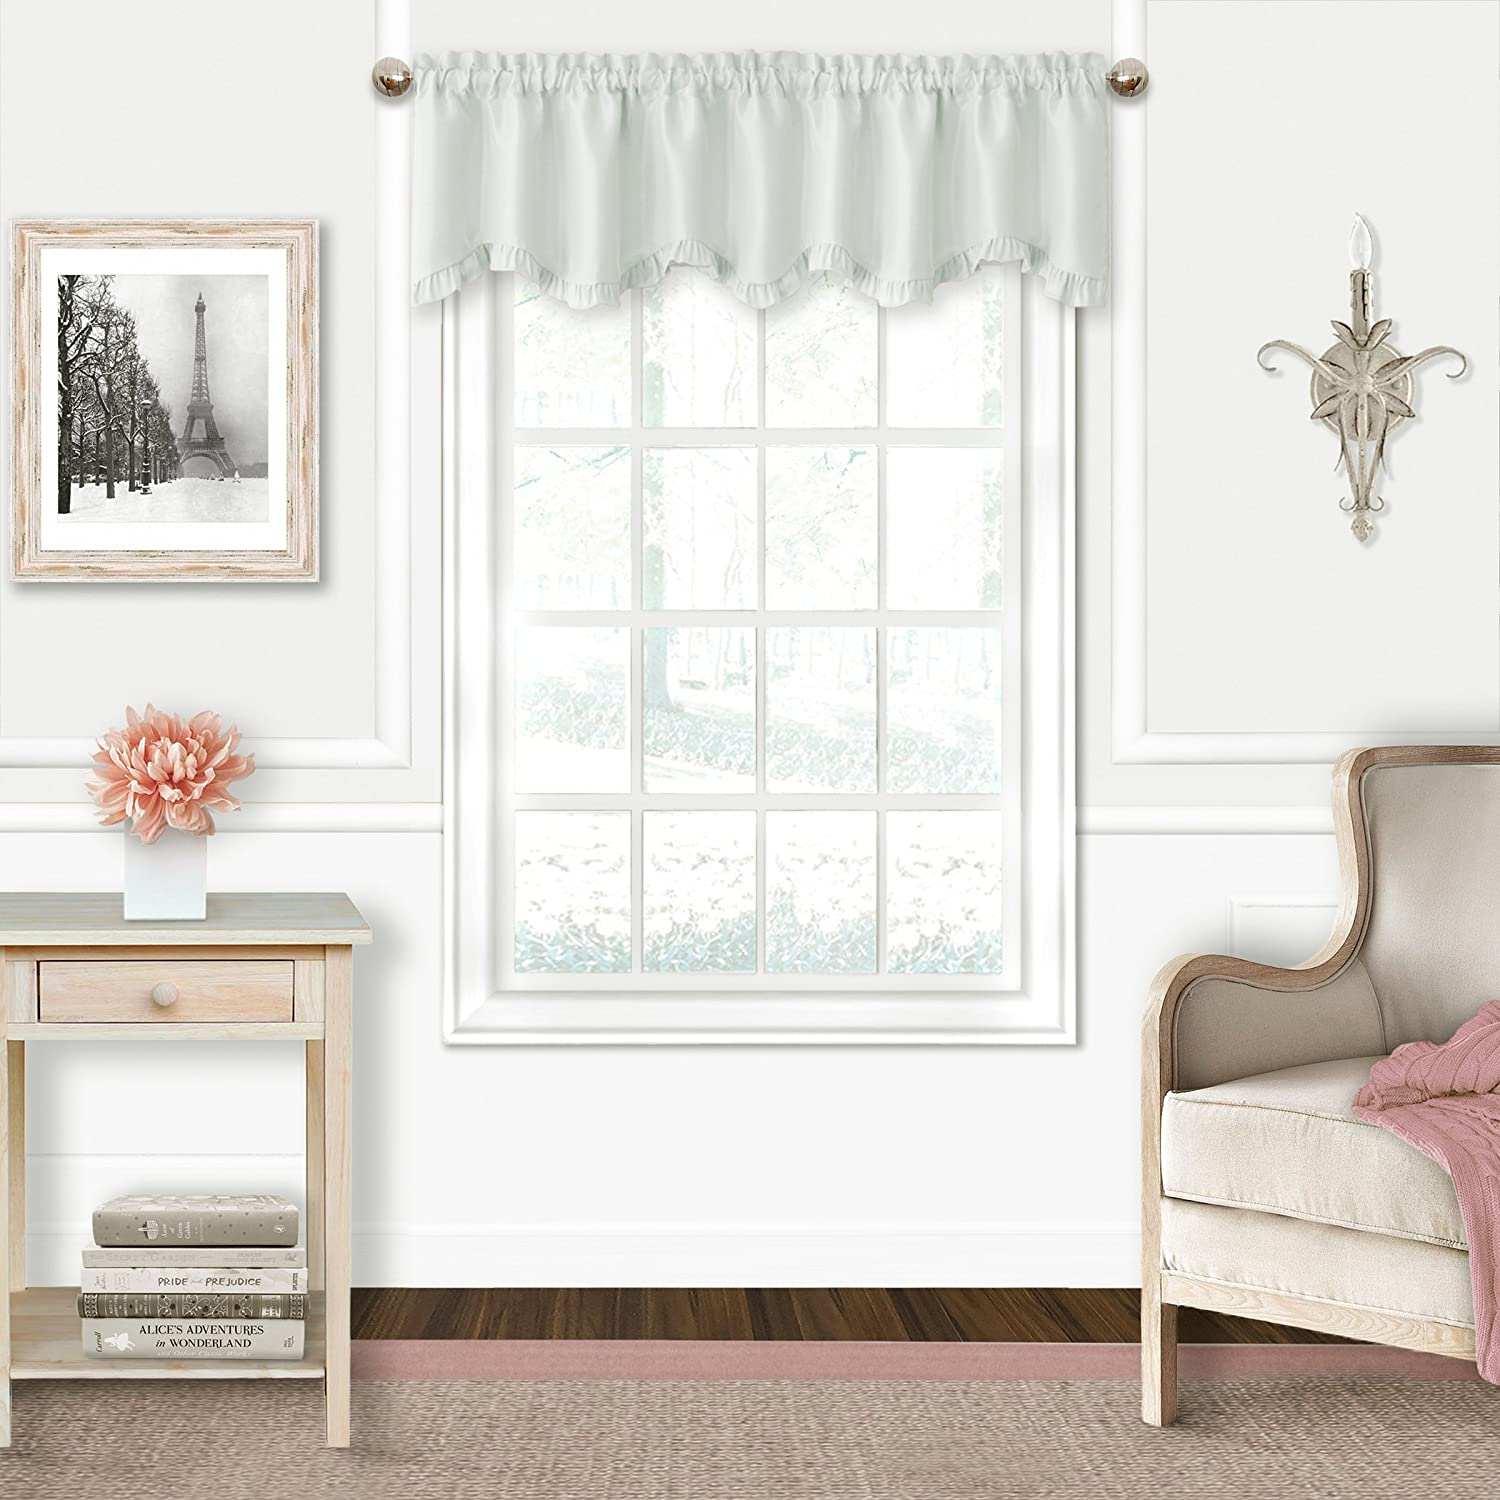 Elrene Adaline Kids Pastel Faux Silk Solid Color Blackout Room Darkening Thermal Insulating Window Curtain/Single Rod Pocket Panel by, 52 Inch Wide X 63 Inch Long, Soft Pink